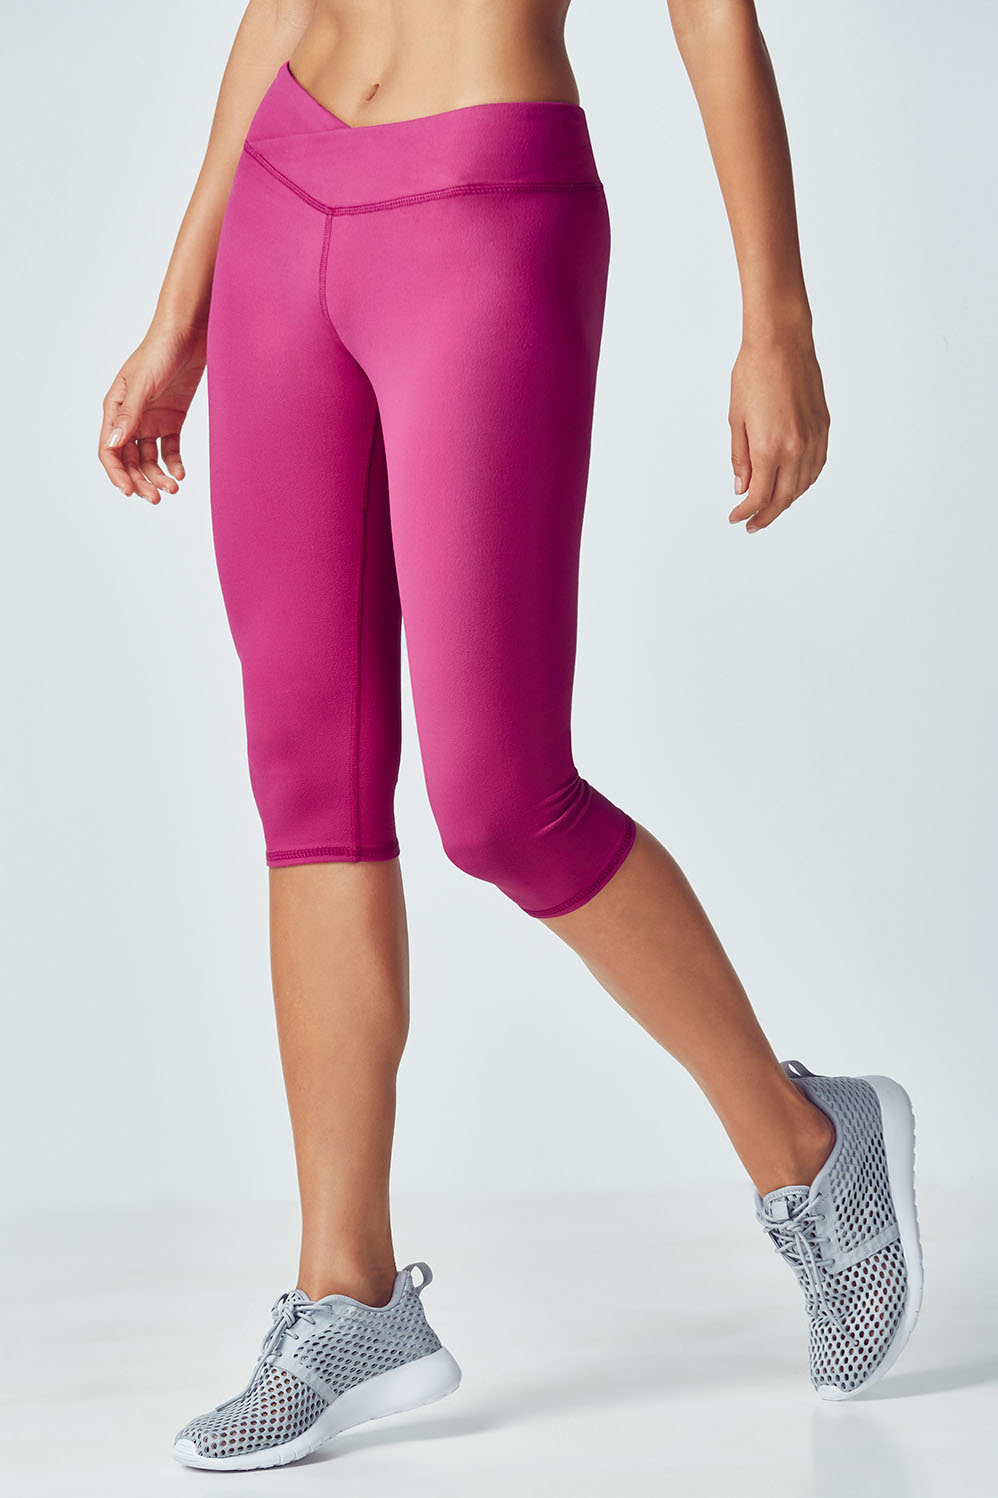 Fabletics Fashion Winn Solid Powerhold Crop Womens Purple Size XS Showcase the best of your body in a mid-rise crossover crop that regulates body heat and blocks harmful rays with UPF technology. UPF 50+, Mid-Rise Crossover Waistband, All-way Stretch, Chafe-resistant, Internal Waistband pocket for cards or keys, Moisture-wicking, Compression Fabric, Fit. Fitted. Hits Below Knee. Inseam. 15 1/2 , Rise. Mid, Fabric Content. 88% Polyester/12% Elastane